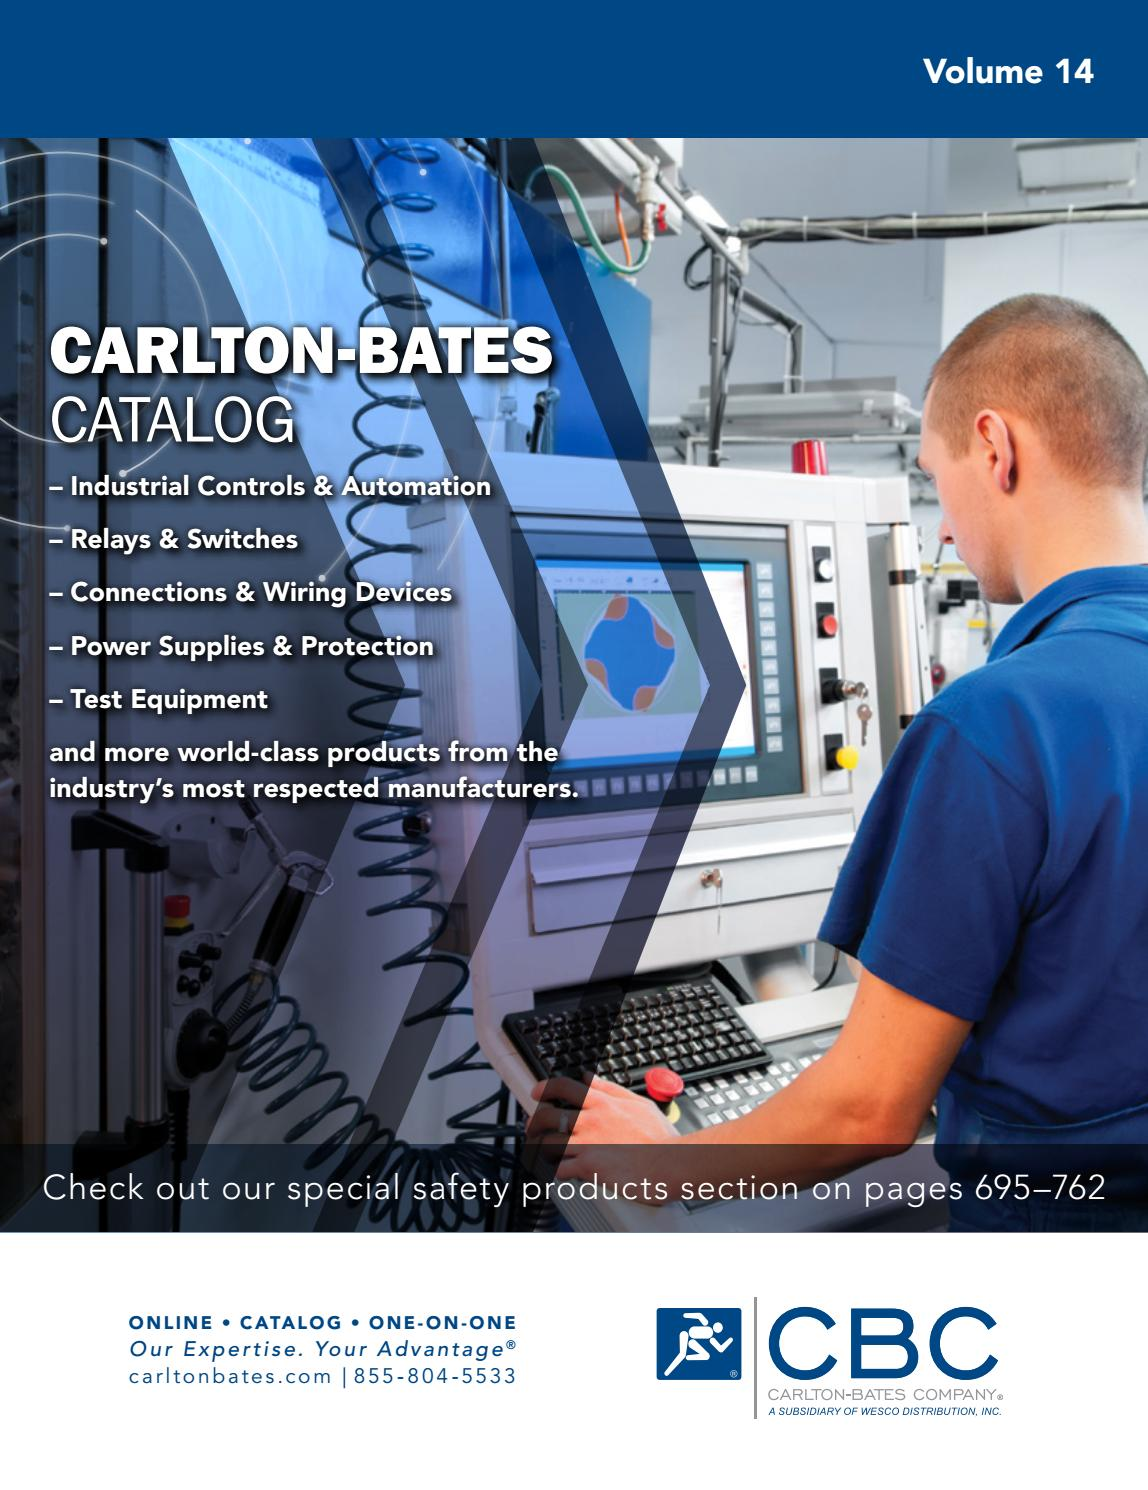 2018 Carlton Bates Catalog By Wesco Distribution Issuu Use A Relay Or Smart Switch With The 45 Watt Higher Halogen Lights